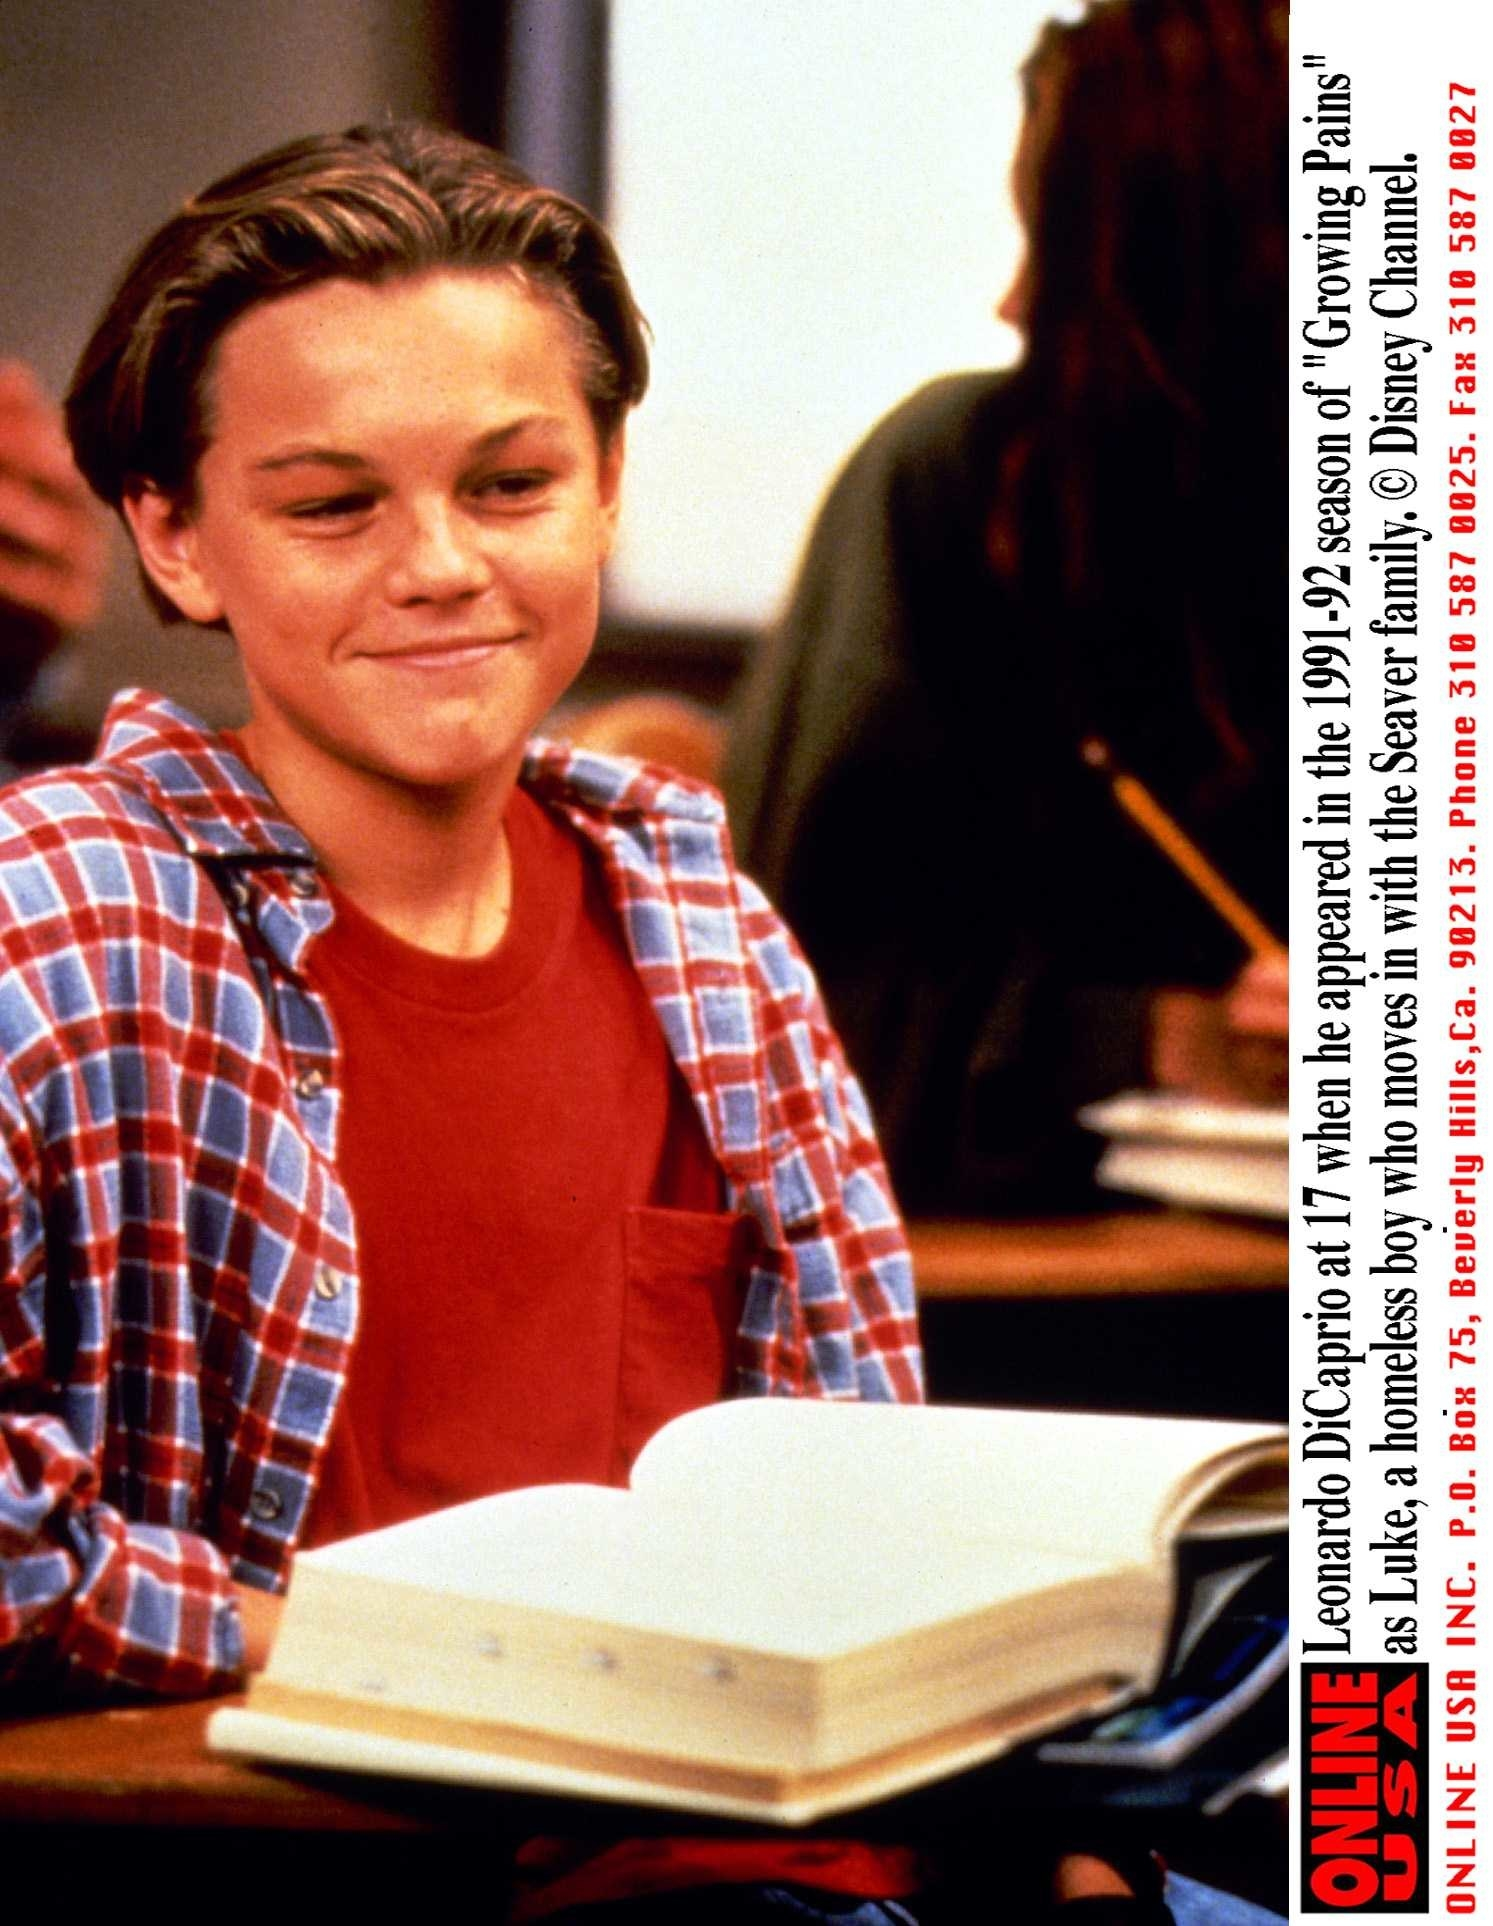 Leonardo DiCaprio was  offered the role of Max in  Hocus Pocus  , but turned it down to star in  What's Eating Gilbert Grape .